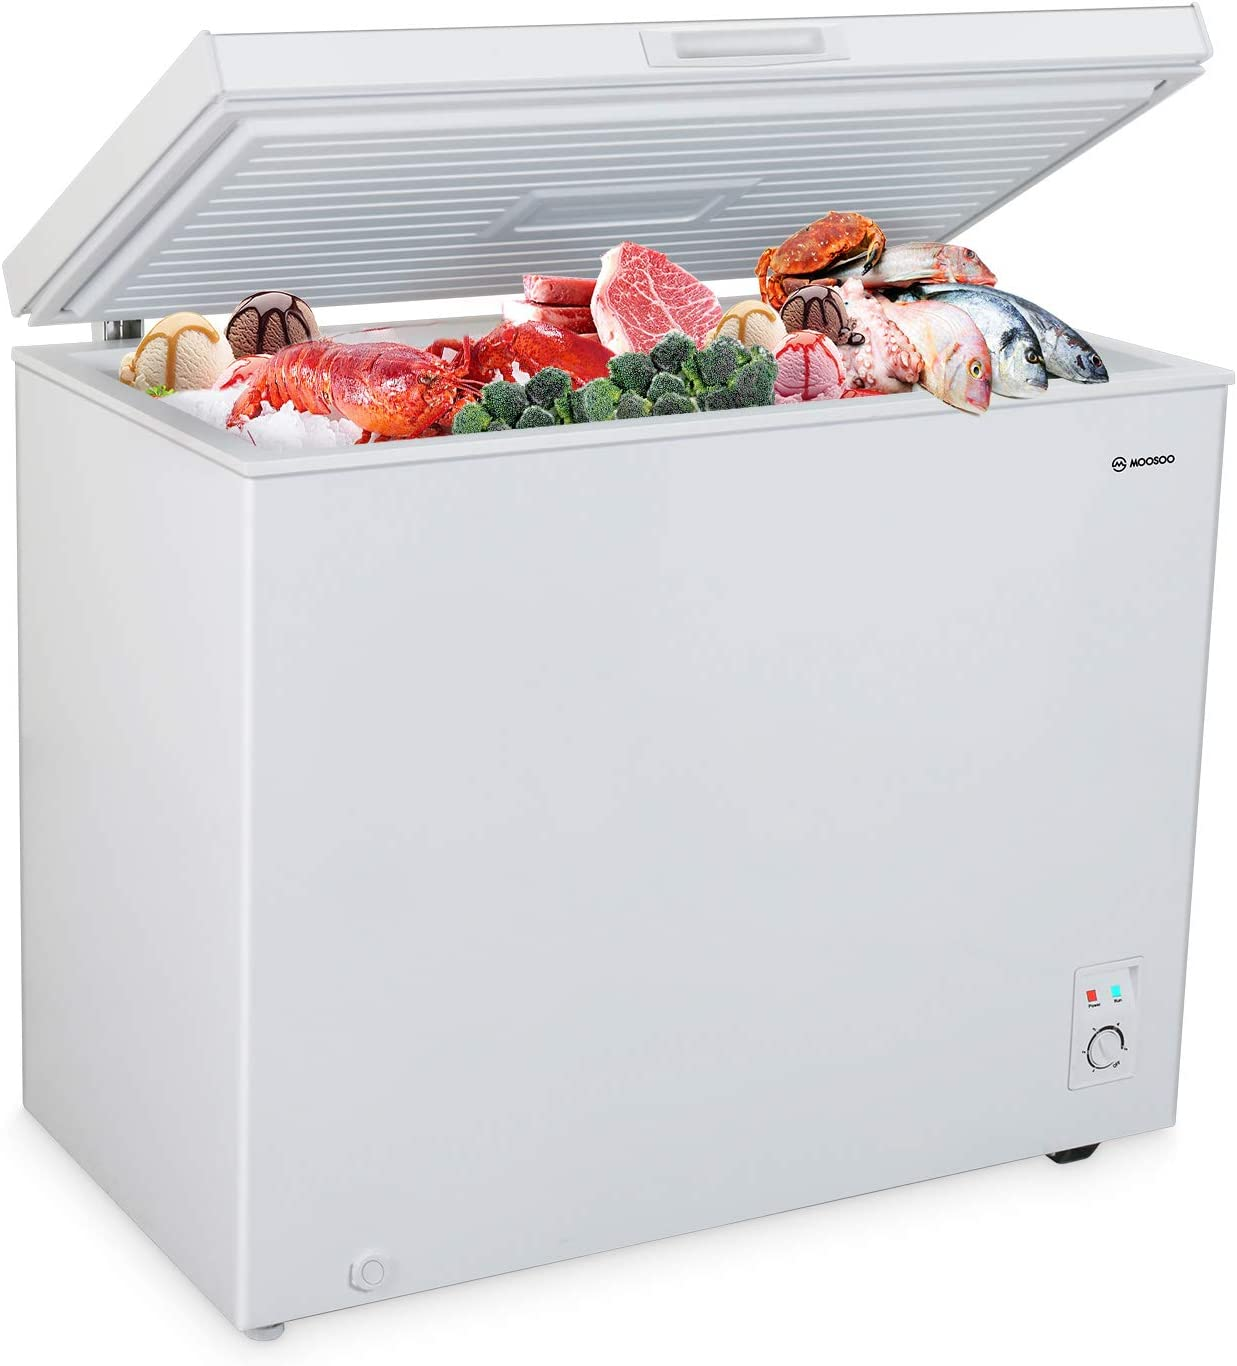 Amazon Com Moosoo Chest Freezer 7 0 Cubic Feet Deep Freezer With Energy Saving And Low Noise 5 Gears Adjustable Temperature With Removable Storage Basket And Roller Movement Appliances